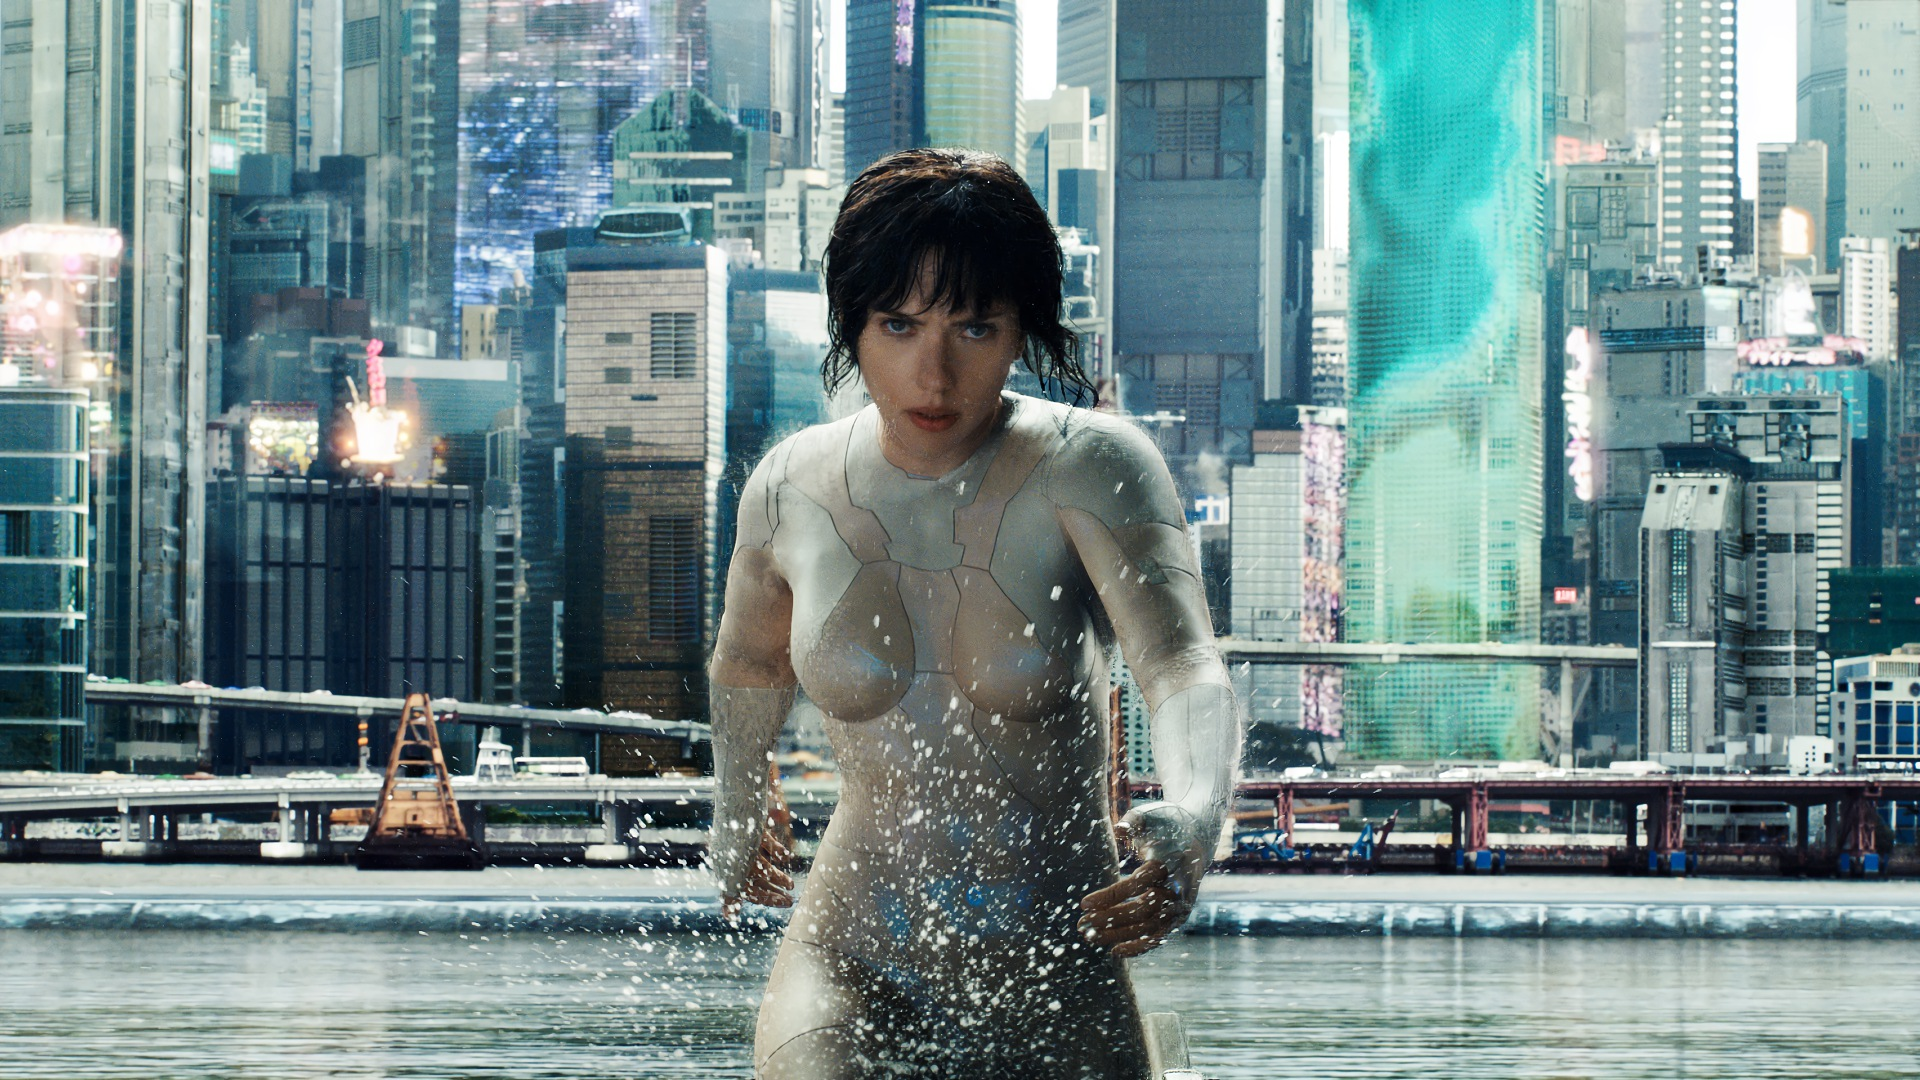 http://www.phenomena-experience.com/galeria/Marzo_2017/ghost-in-the-shell2.jpg